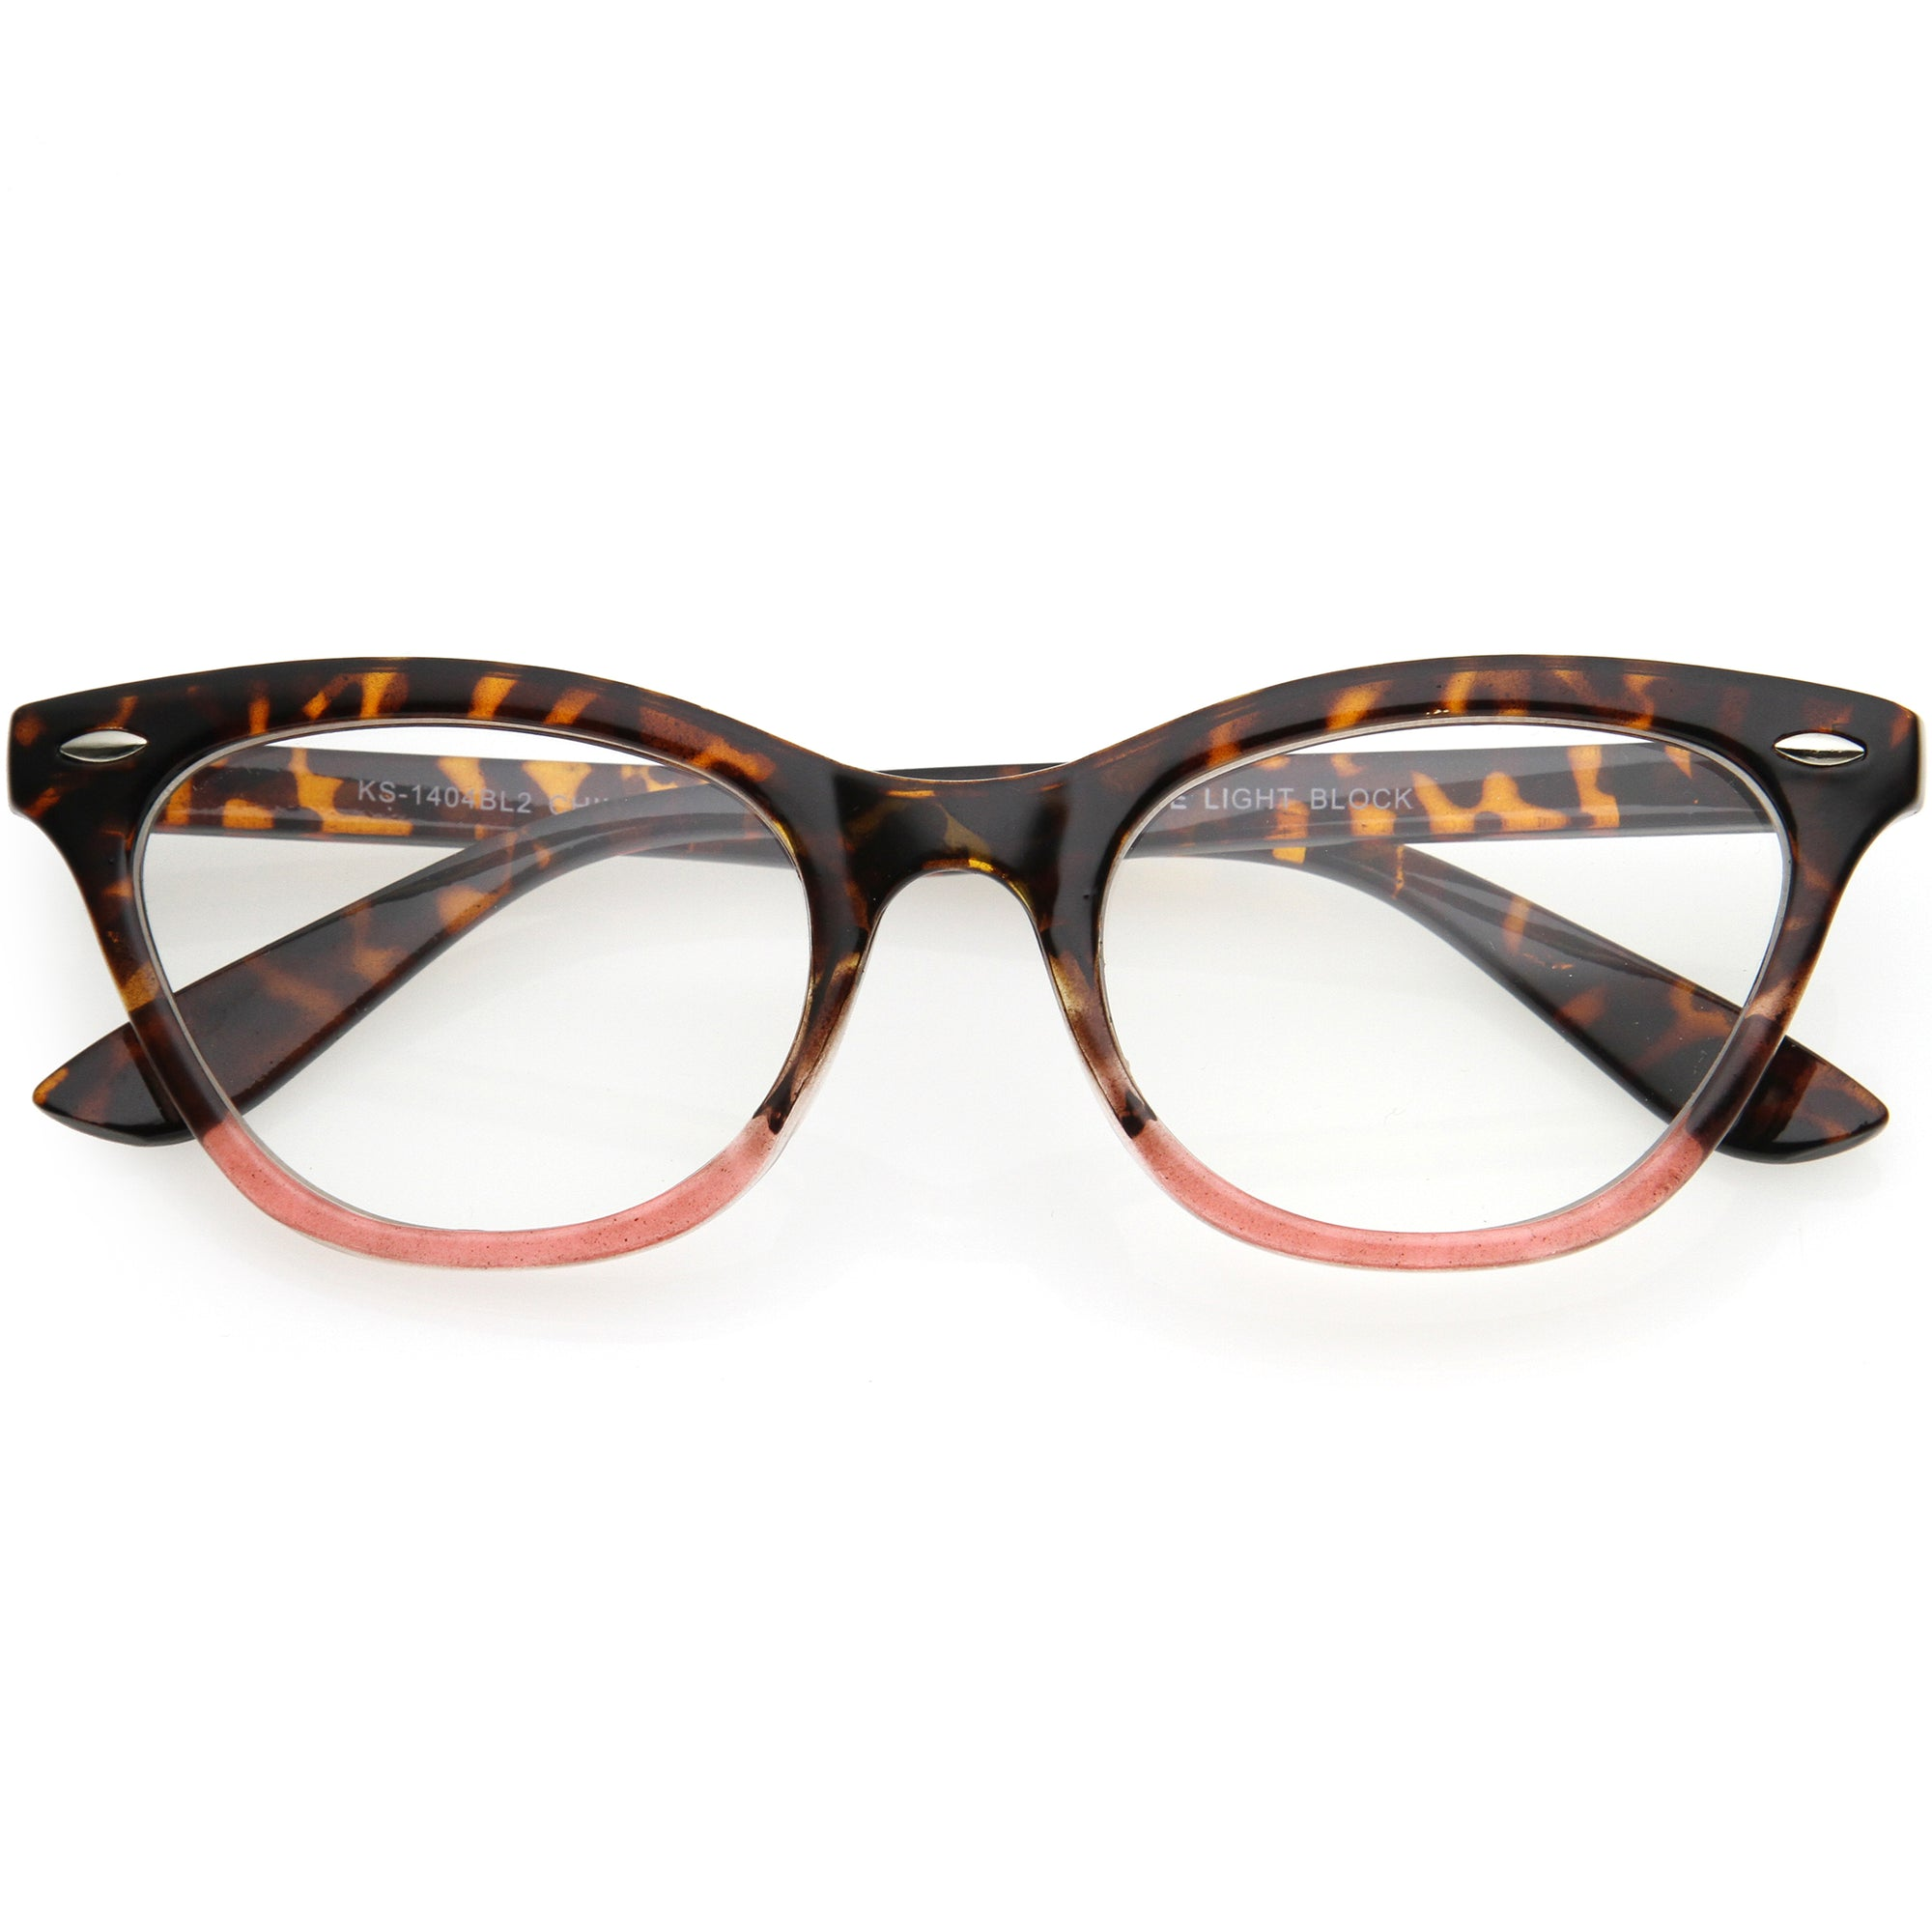 Chic Fashion Everyday Small Cat Eye Blue Light Glasses D156